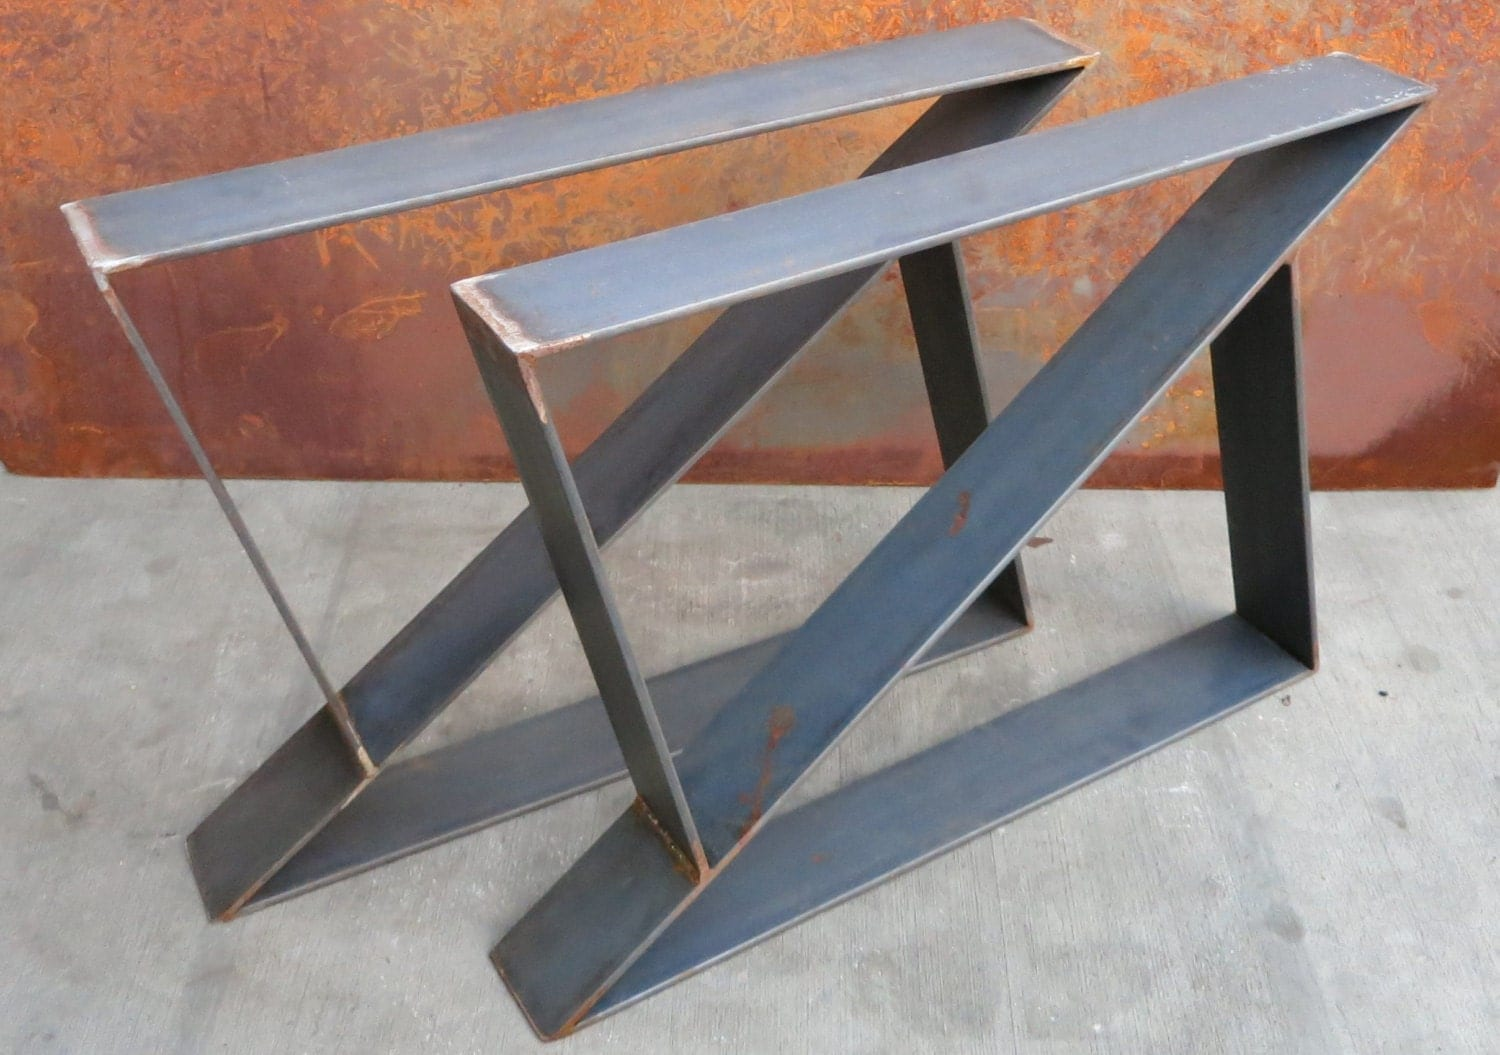 Z Metal Table Legs Set Of 2